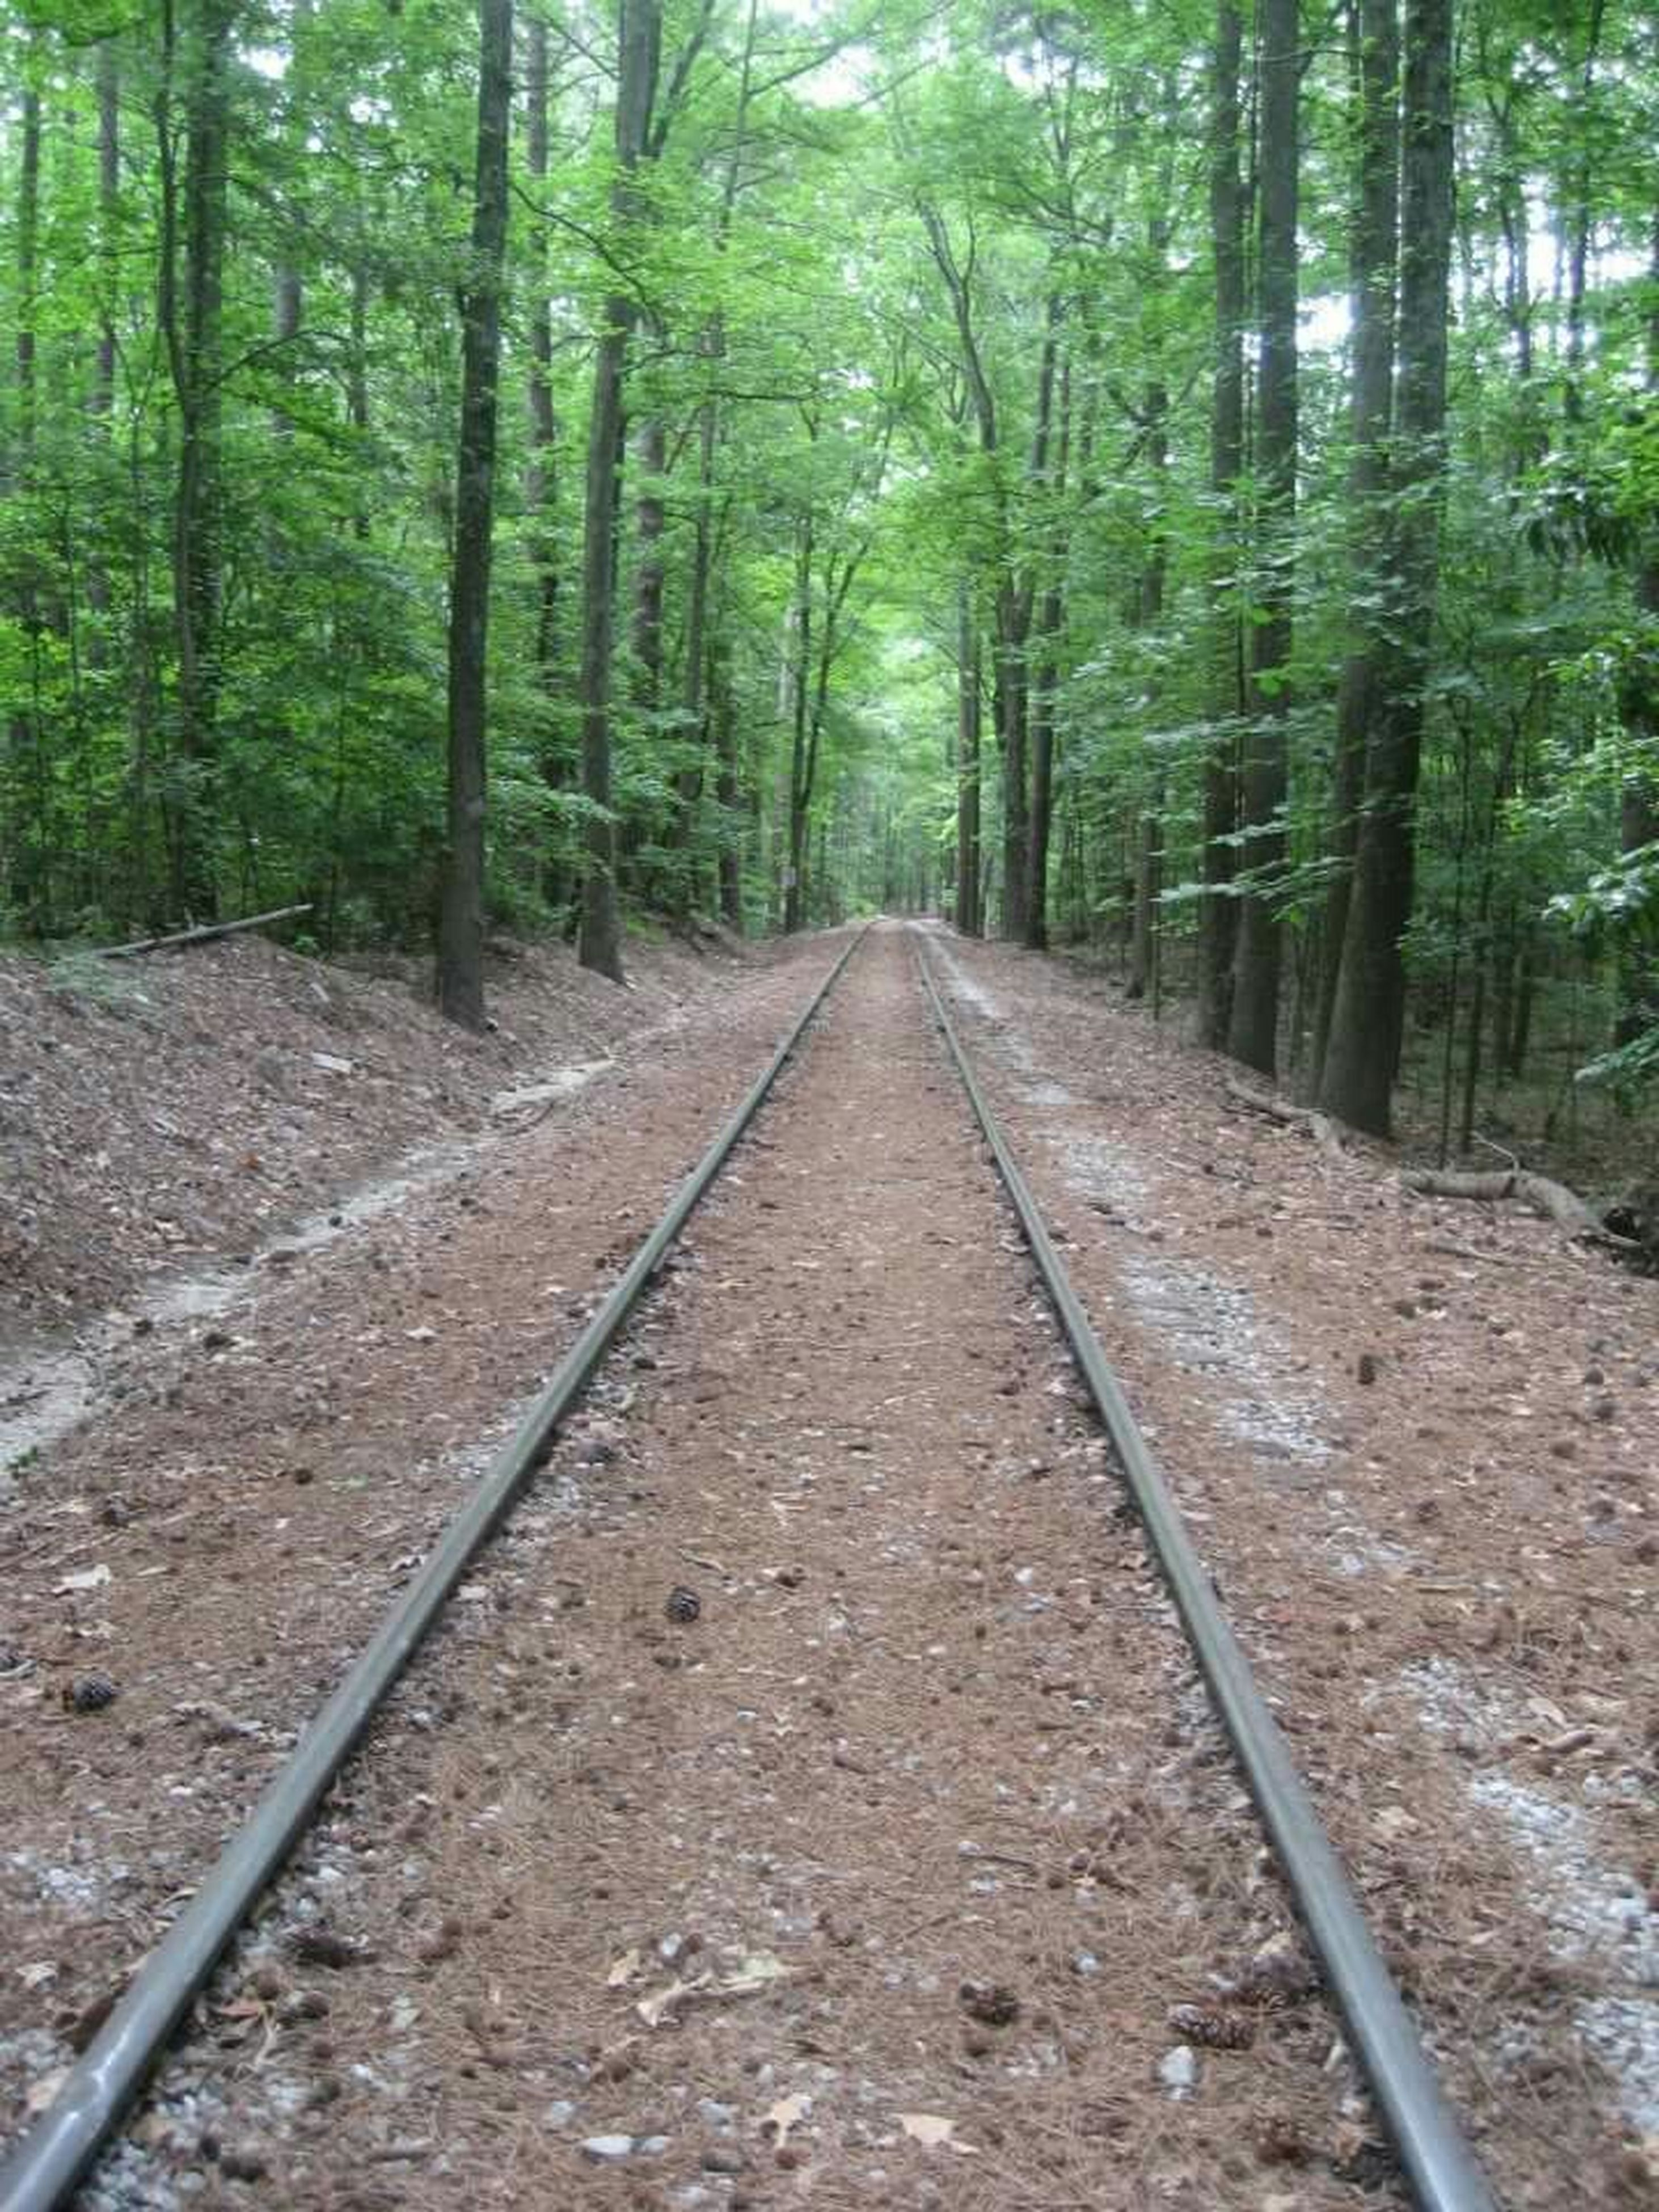 tree, the way forward, forest, diminishing perspective, transportation, vanishing point, railroad track, tranquility, nature, tranquil scene, growth, rail transportation, woodland, day, non-urban scene, tree trunk, beauty in nature, outdoors, no people, landscape